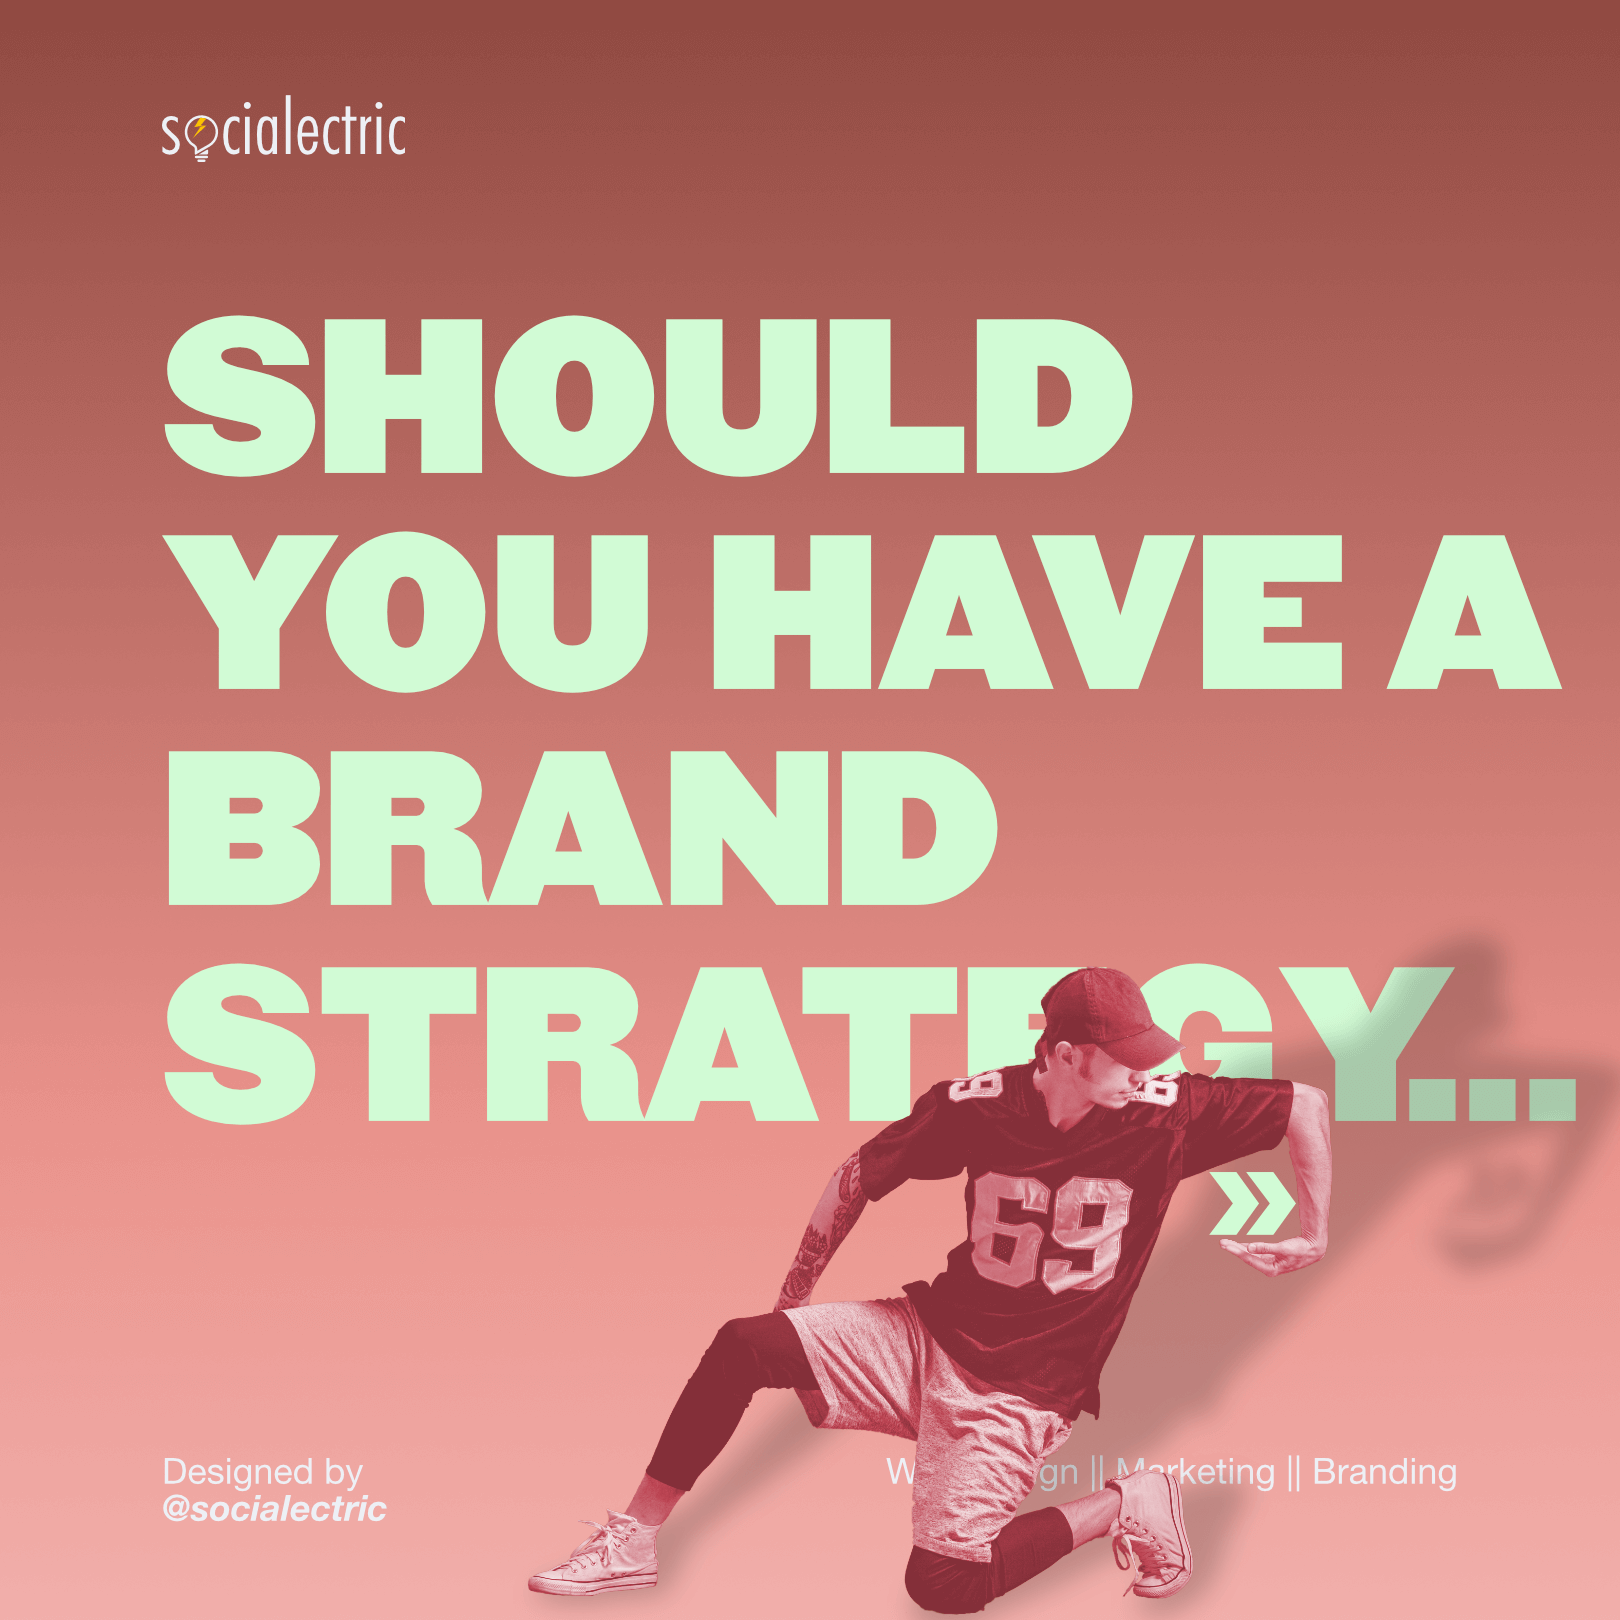 Should you have a brand strategy - Socialectric Instagram Posts